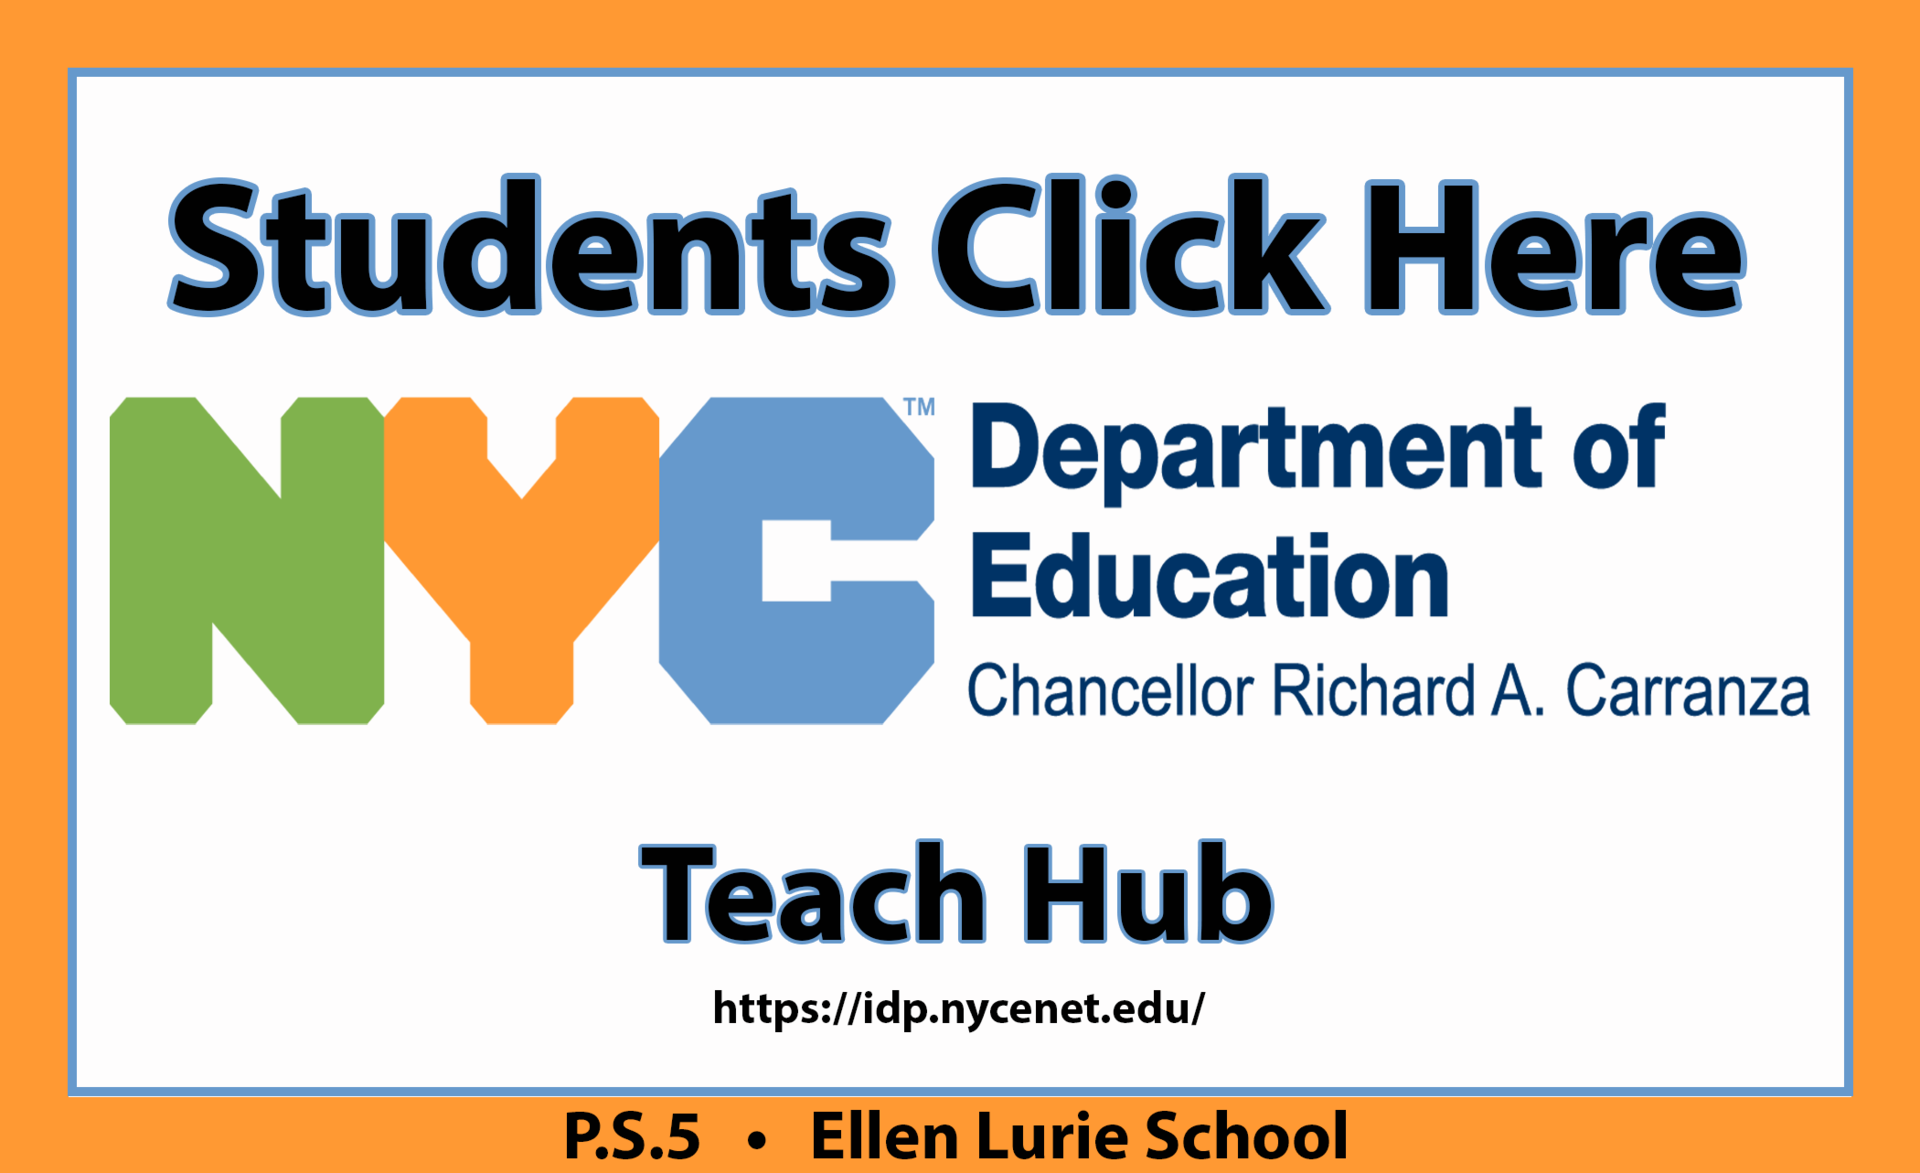 NYCDOE Teach Hub Website